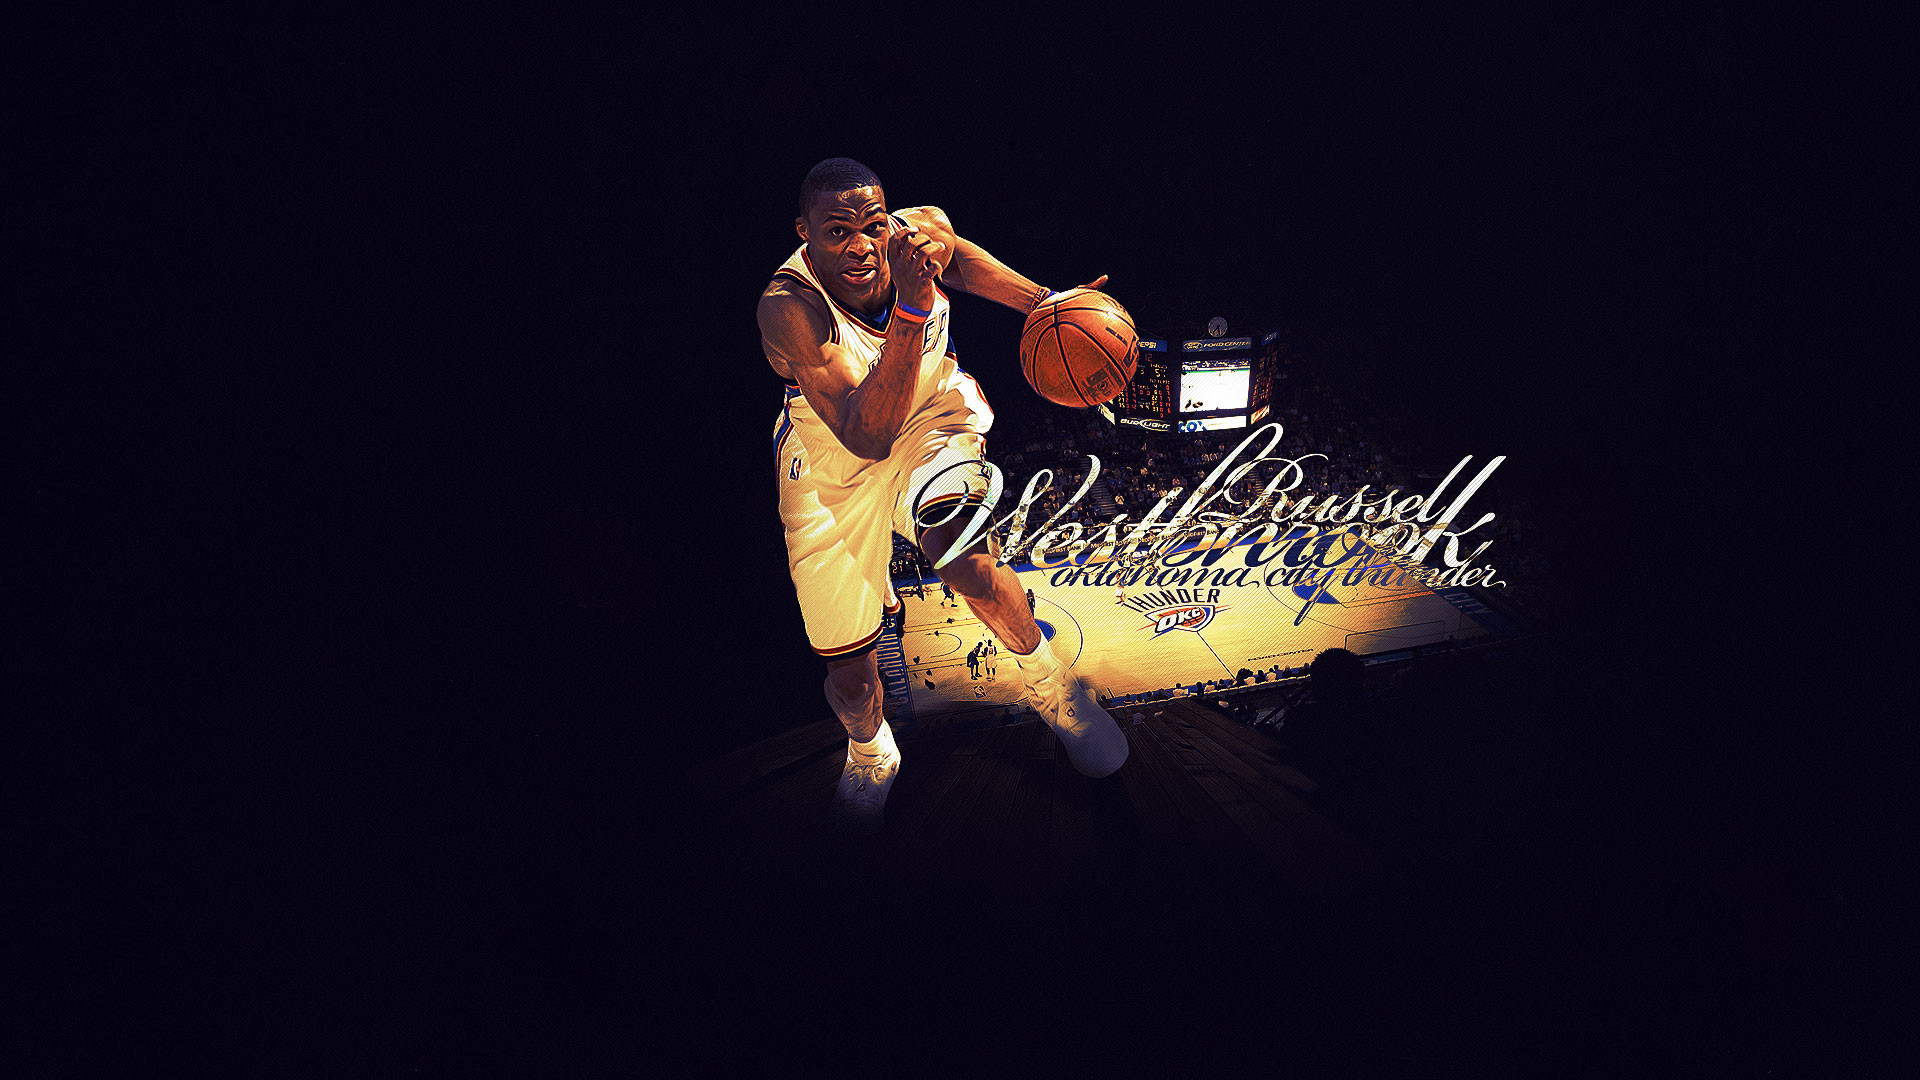 1920x1080 Russell Westbrook Thunder Widescreen Wallpaper